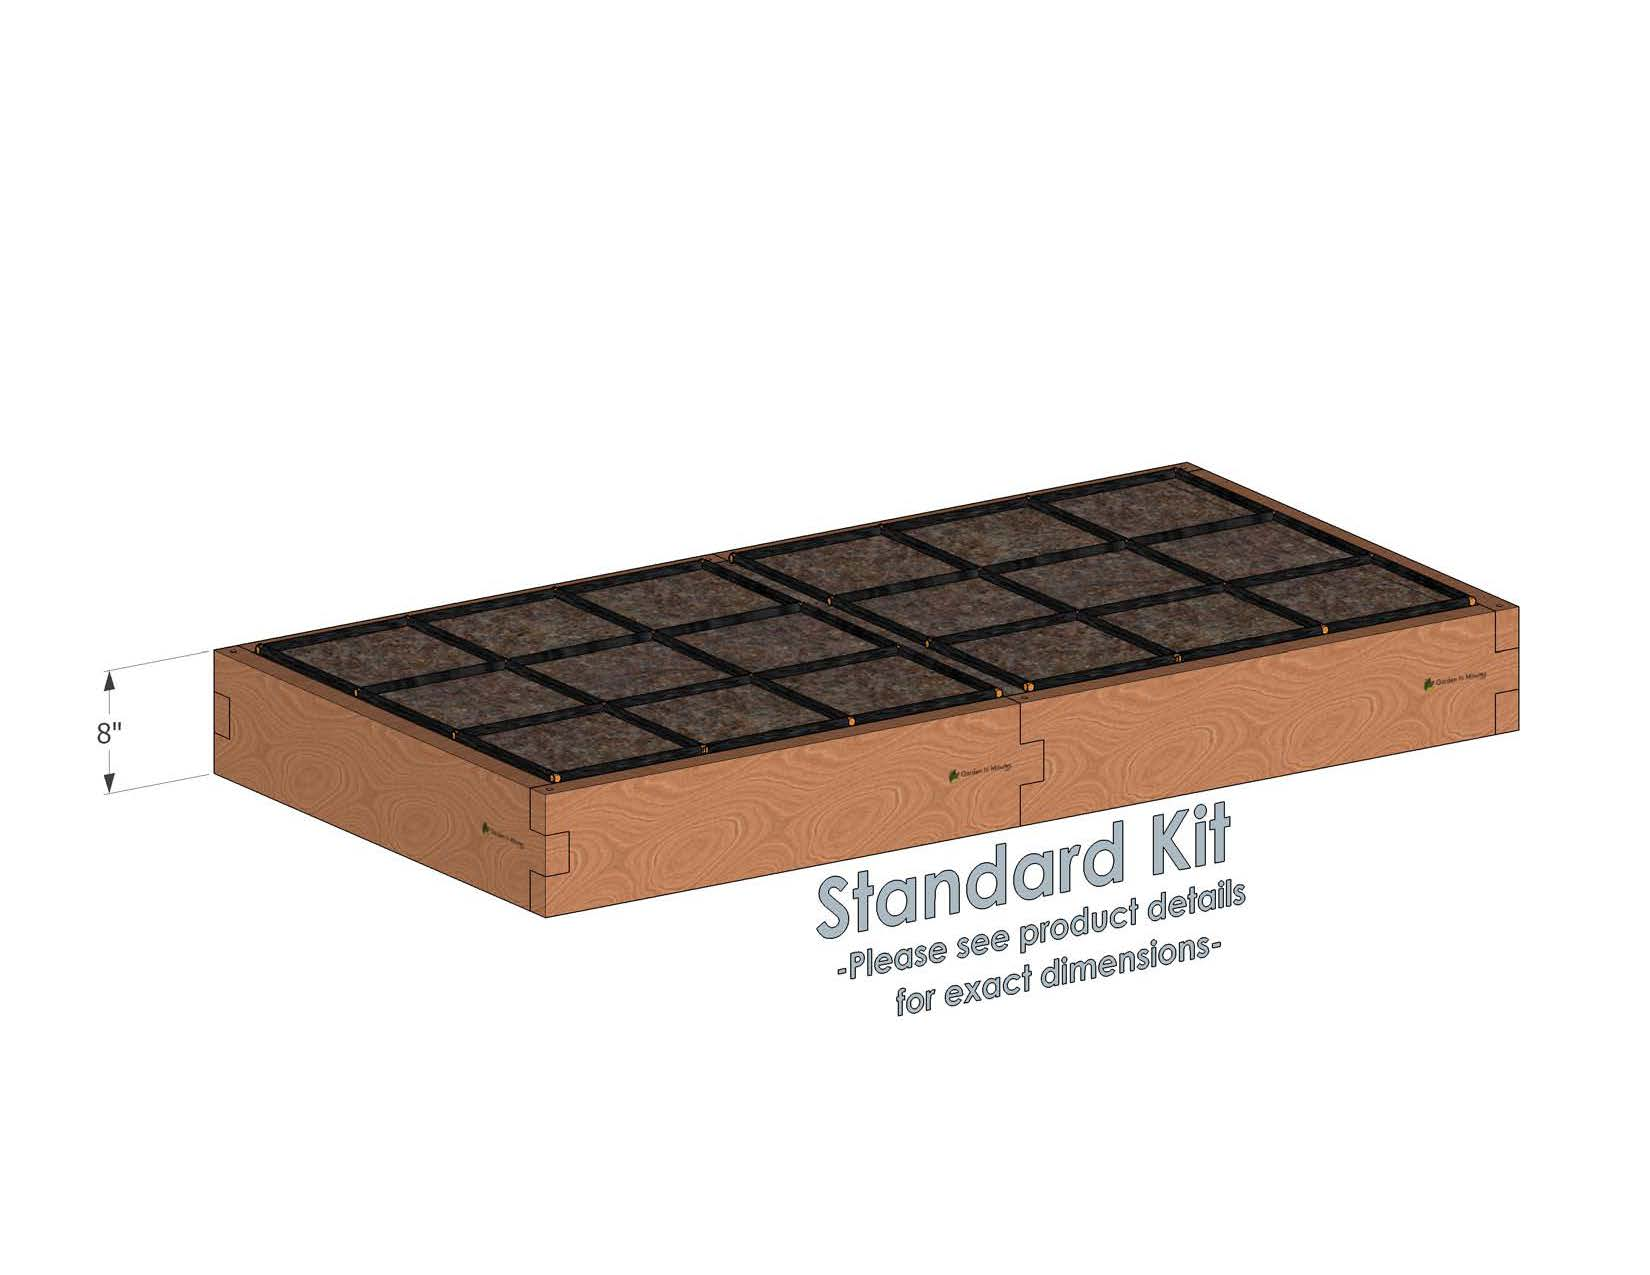 3x6 Raised Garden Kit Standard Height